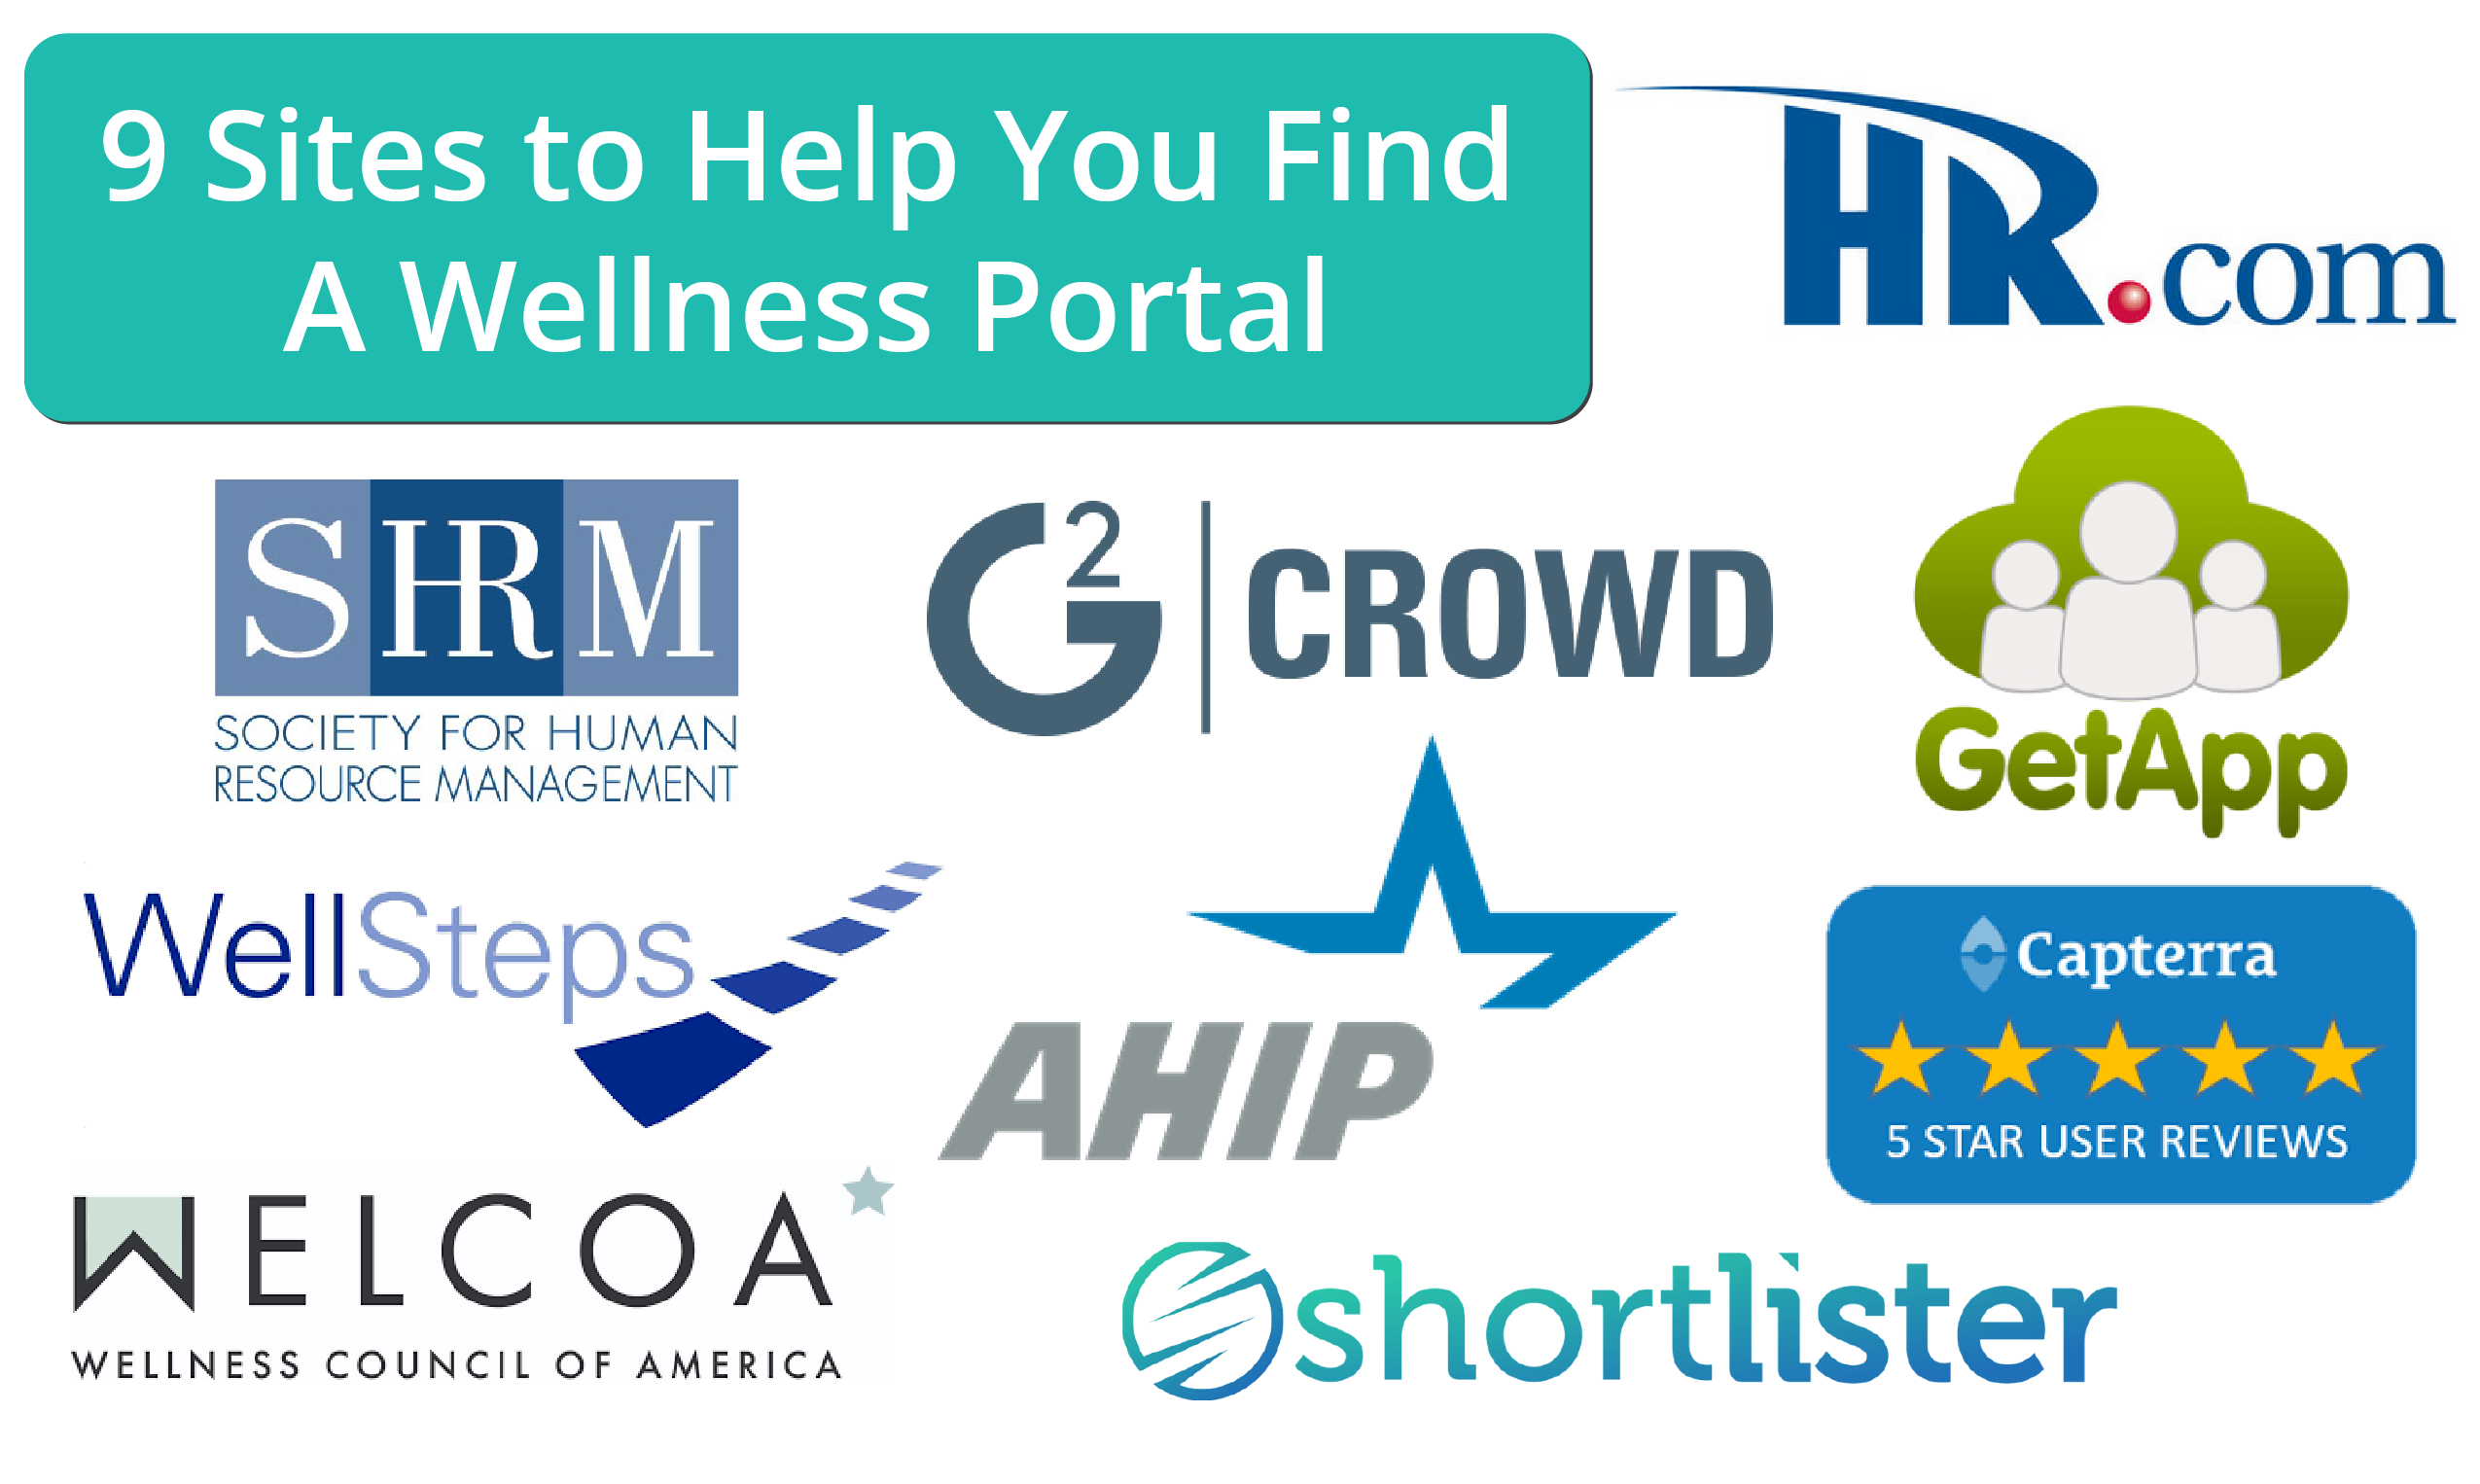 9 Sites to Help FInd A Wellness Portal-01